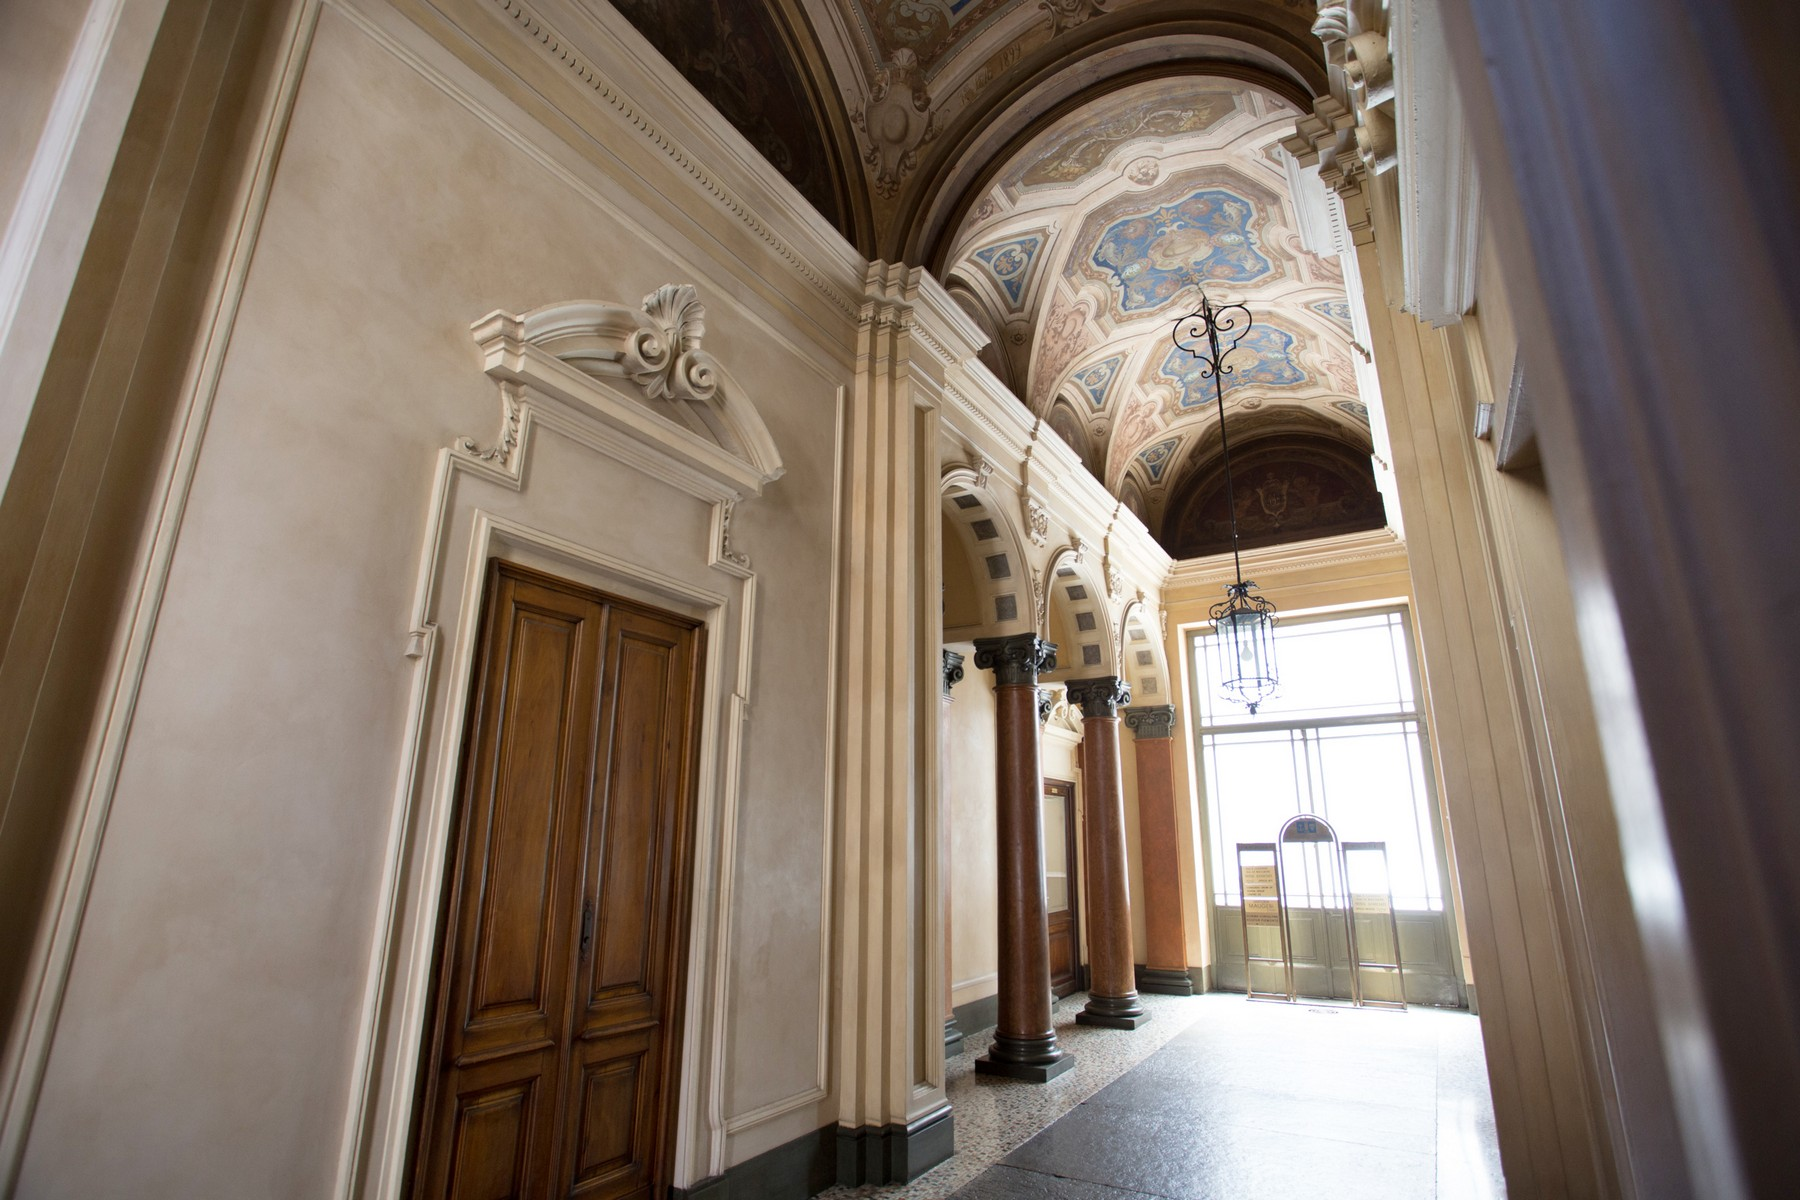 Additional photo for property listing at Sfarzoso appartamento nel centro storico Via Pietro Micca Turin, Torino 10122 Italia